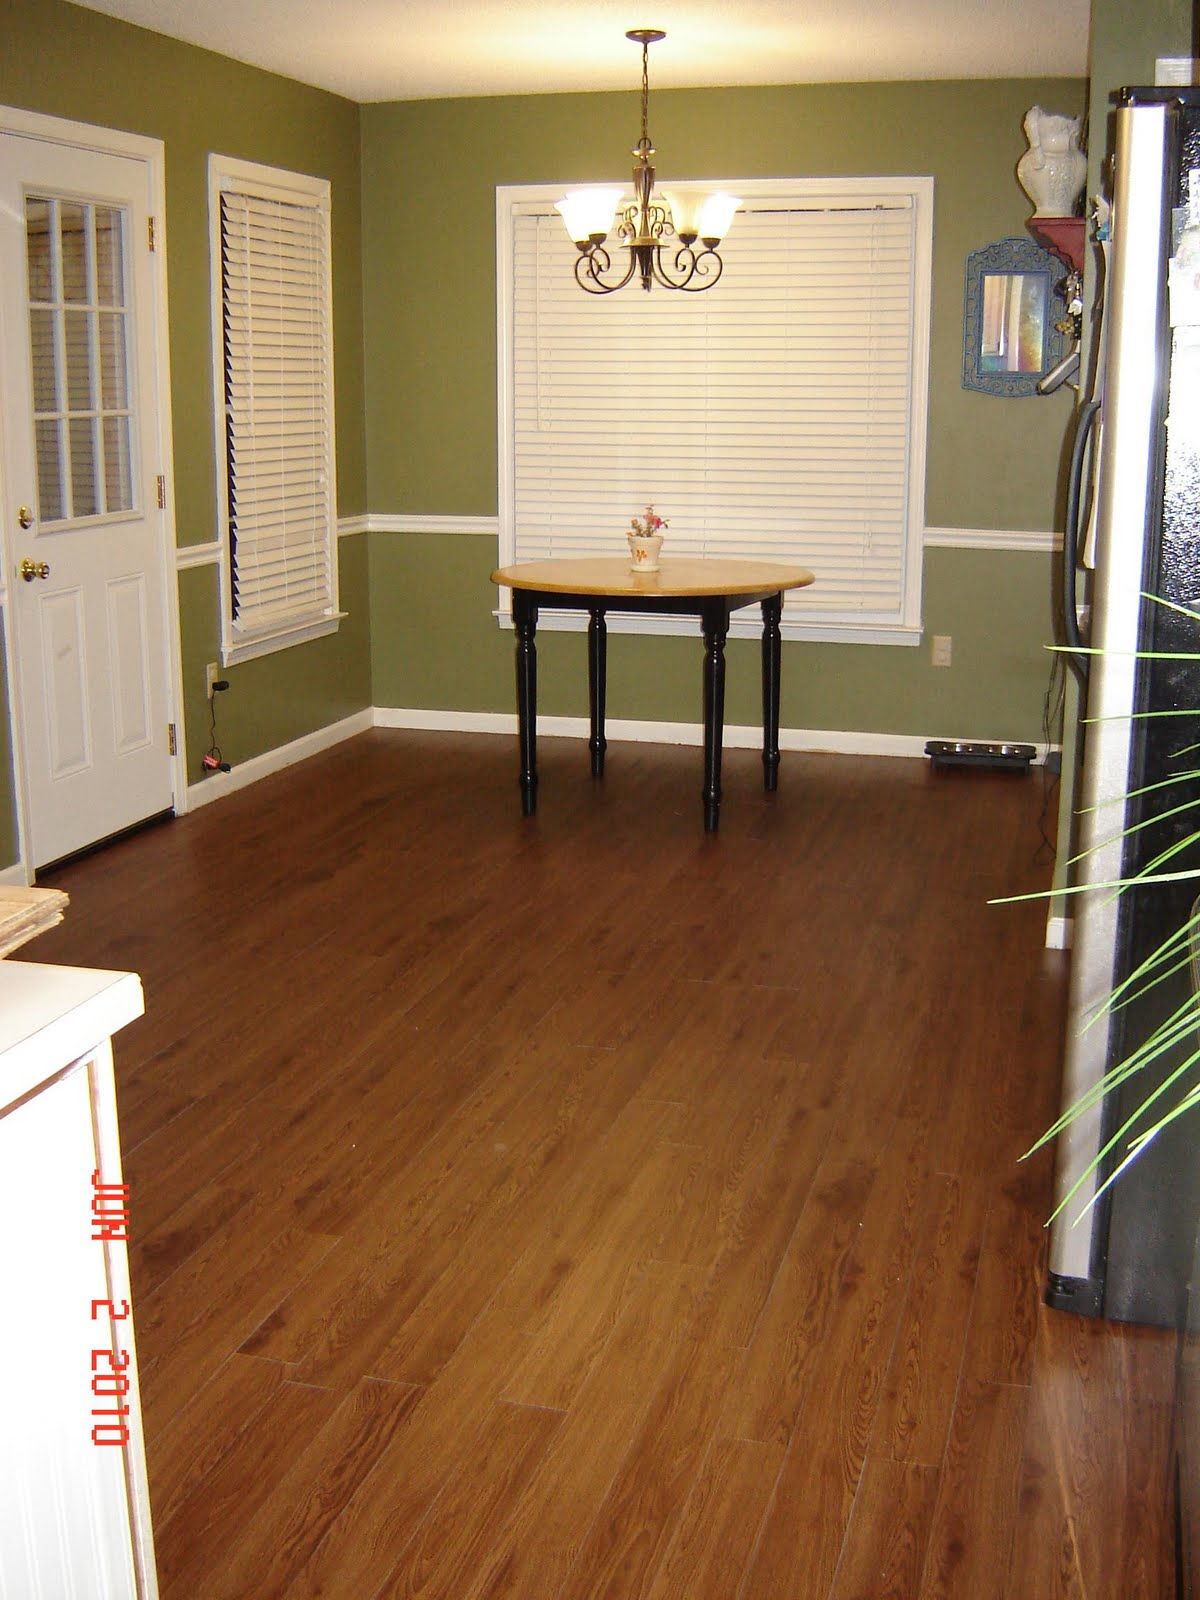 Creating Balance Peel Amp Stick Hardwood Floor